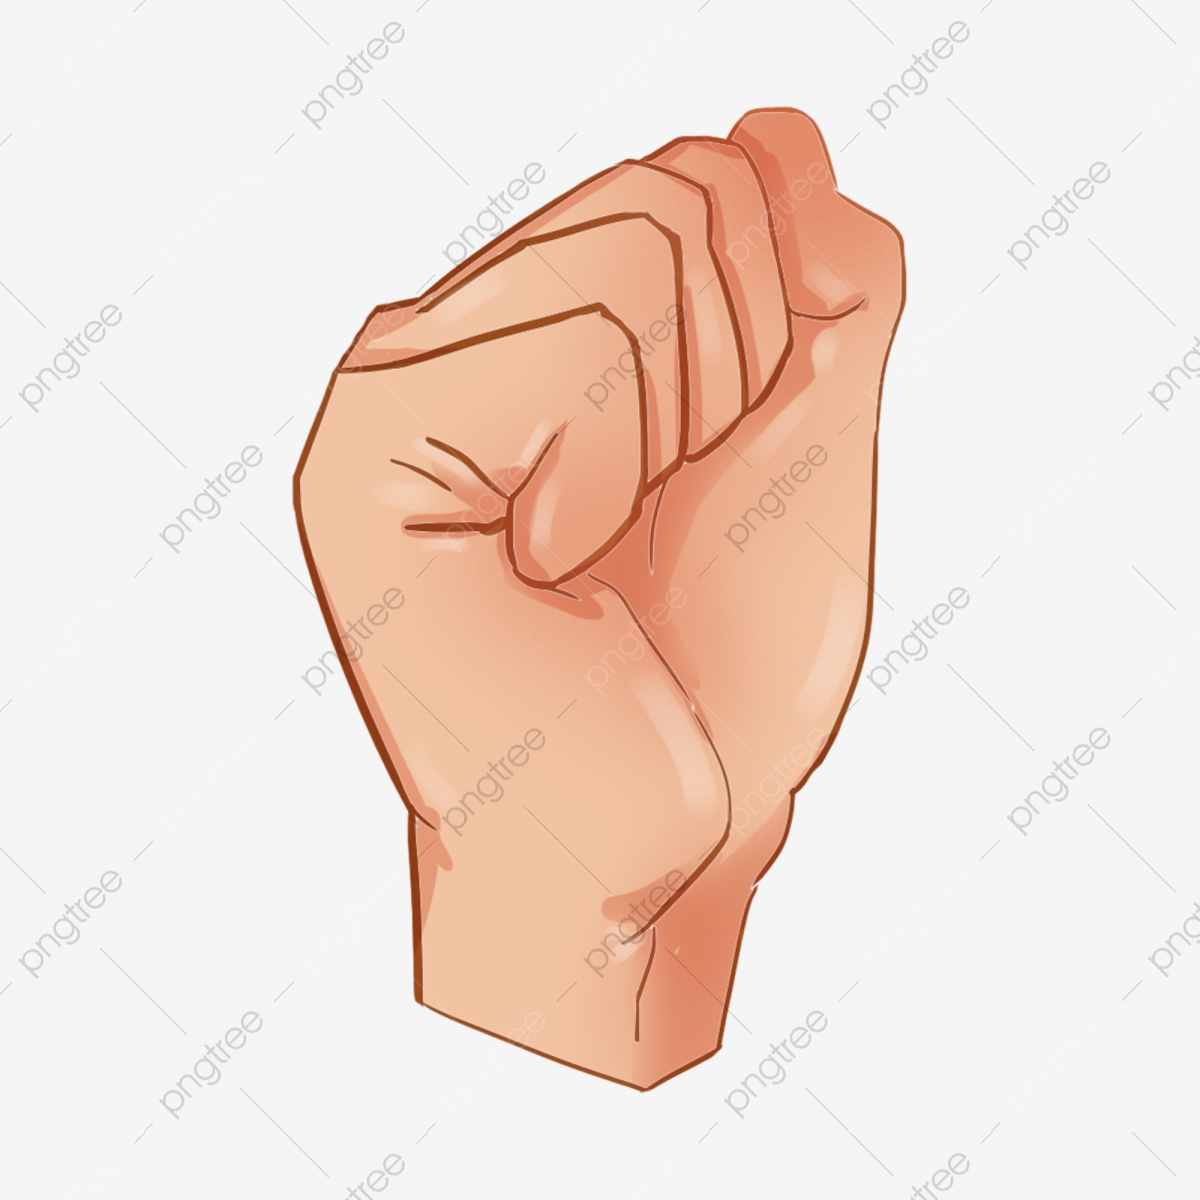 Fist Punch Cartoon Gesture Illustration Yellow Fist Gesture Png Transparent Clipart Image And Psd File For Free Download